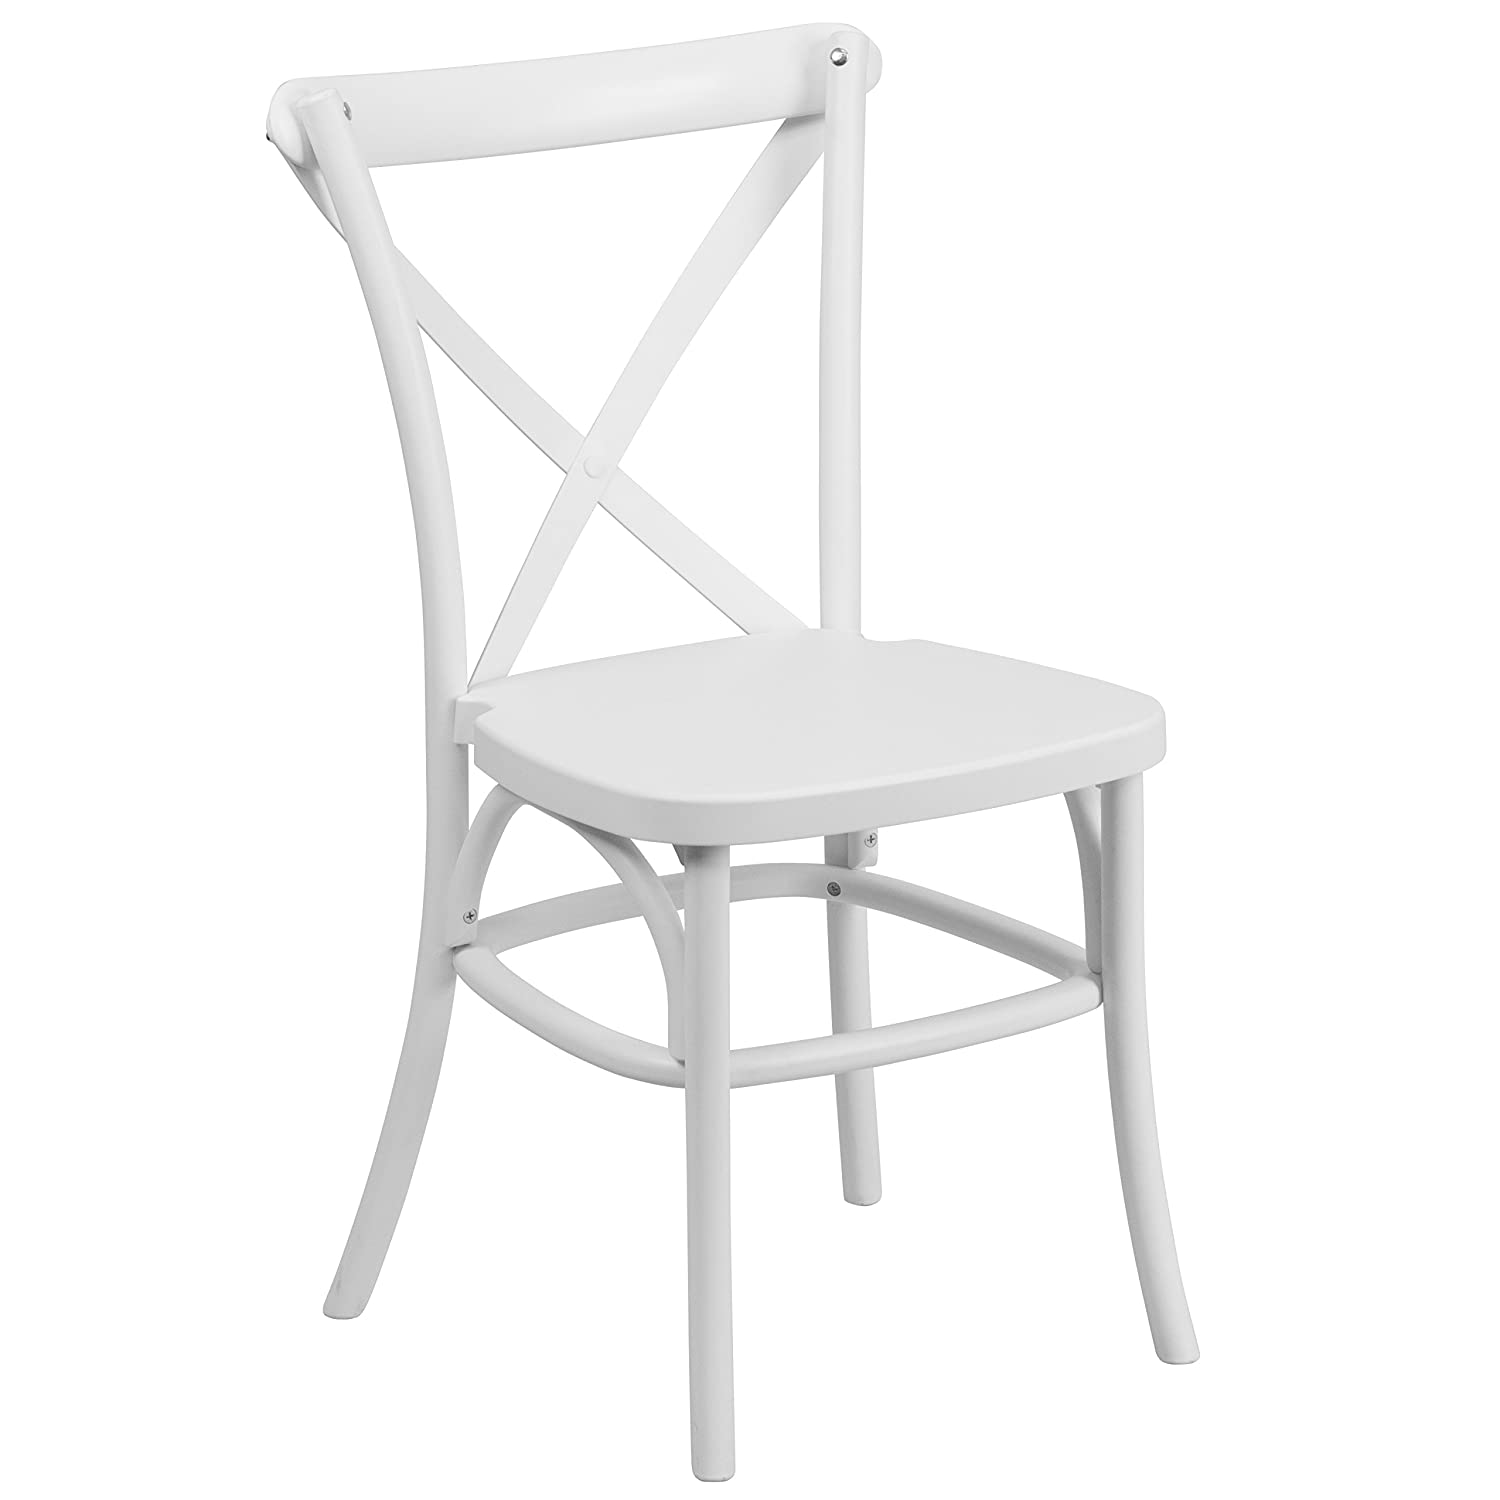 Amazon.com: Flash Furniture HERCULES Series White Resin Indoor Outdoor  Cross Back Chair With Steel Inner Leg: Kitchen U0026 Dining